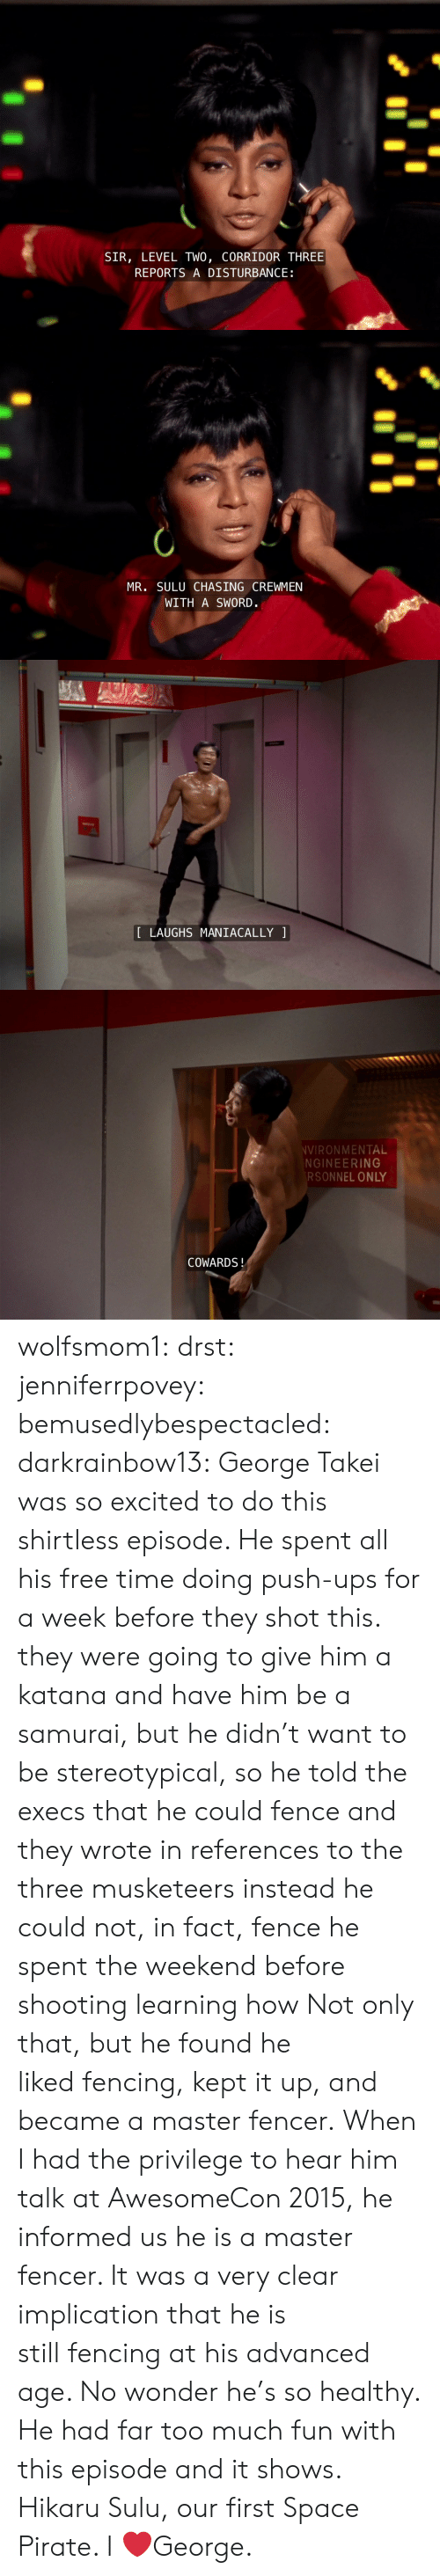 stereotypical: SIR, LEVEL TWO, CORRIDOR THREE  REPORTS A DISTURBANCE   MR. SULU CHASING CREWMEN  WITH A SWORD.   LAUGHS MANIACALLY   VIRONMENTAL  NGINEERING  RSONNEL ONLY  COWARDS! wolfsmom1:  drst:   jenniferrpovey:  bemusedlybespectacled:  darkrainbow13:  George Takei was so excited to do this shirtless episode. He spent all his free time doing push-ups for a week before they shot this.  they were going to give him a katana and have him be a samurai, but he didn't want to be stereotypical, so he told the execs that he could fence and they wrote in references to the three musketeers instead he could not, in fact, fence he spent the weekend before shooting learning how  Not only that, but he found he likedfencing, kept it up, and became a master fencer. When I had the privilege to hear him talk at AwesomeCon 2015, he informed us he isa master fencer. It was a very clear implication that he is stillfencing at his advanced age. No wonder he's so healthy. He had fartoo much fun with this episode and it shows.   Hikaru Sulu, our first Space Pirate.    I ❤️George.